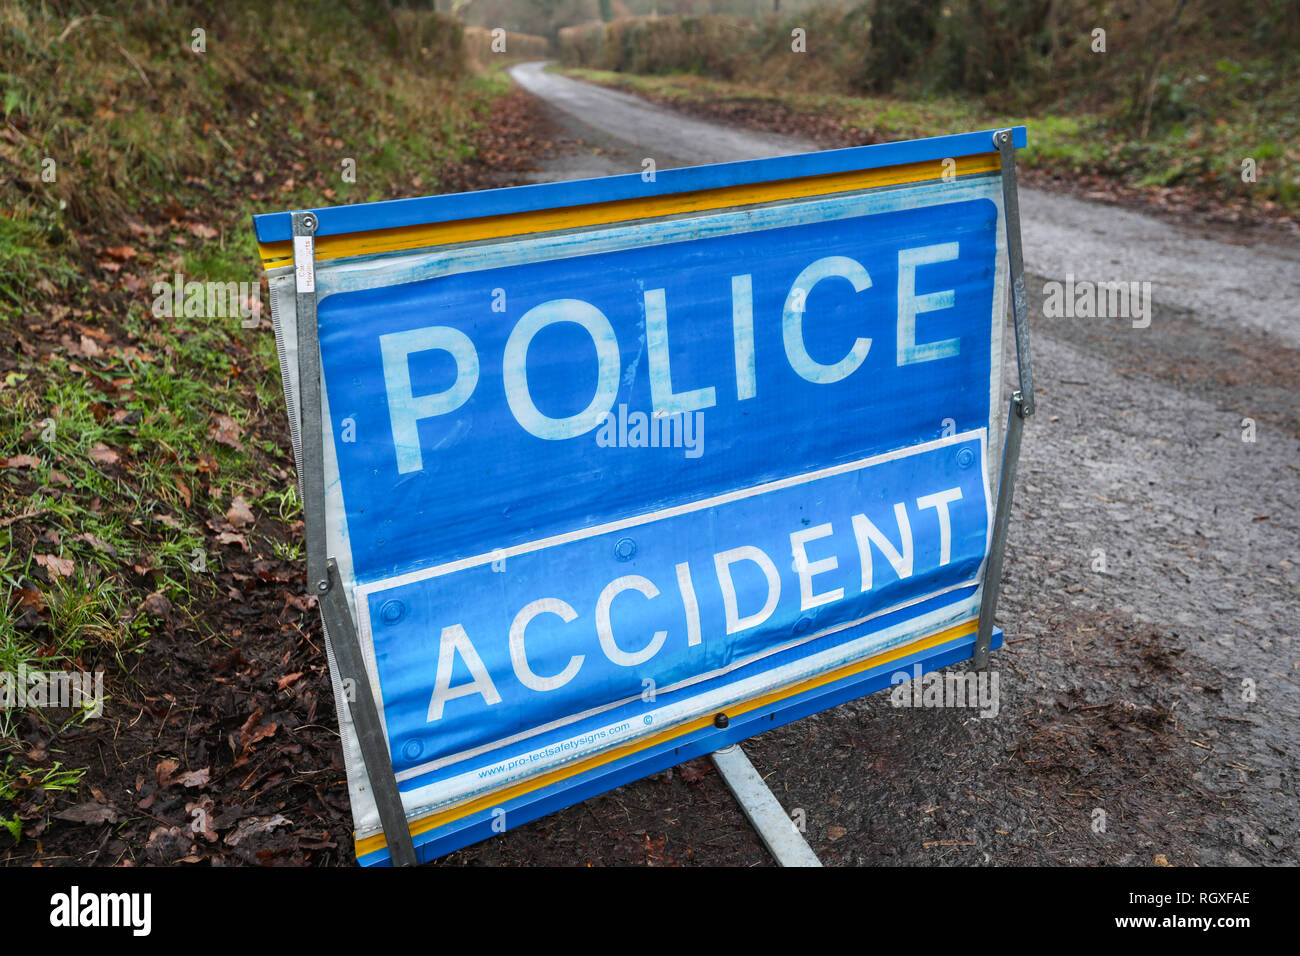 Police accident road sign on a country lane at the scene of an accident - Stock Image